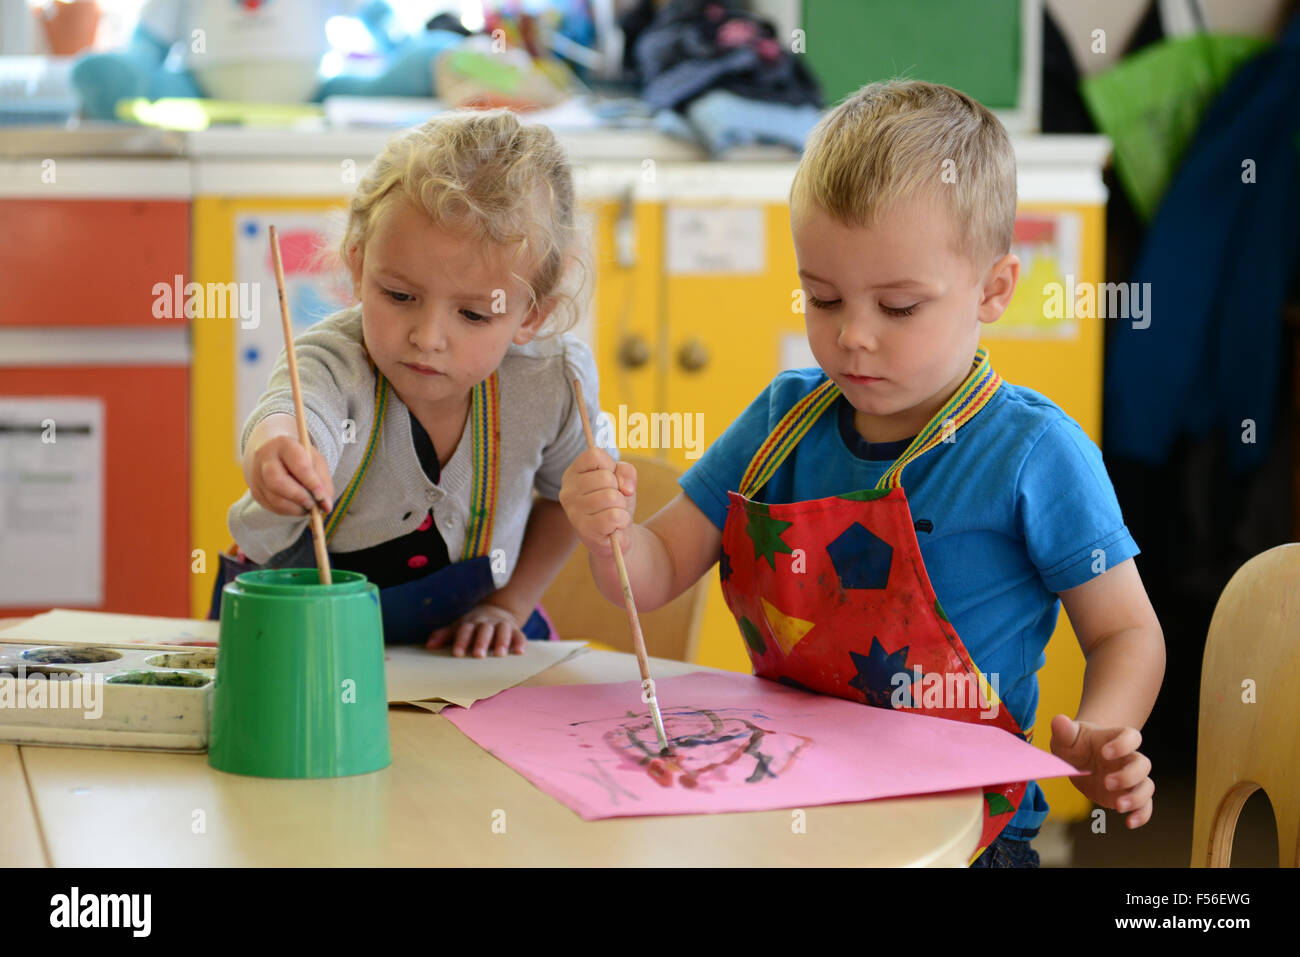 A little girl & boy painting at nursery school. - Stock Image